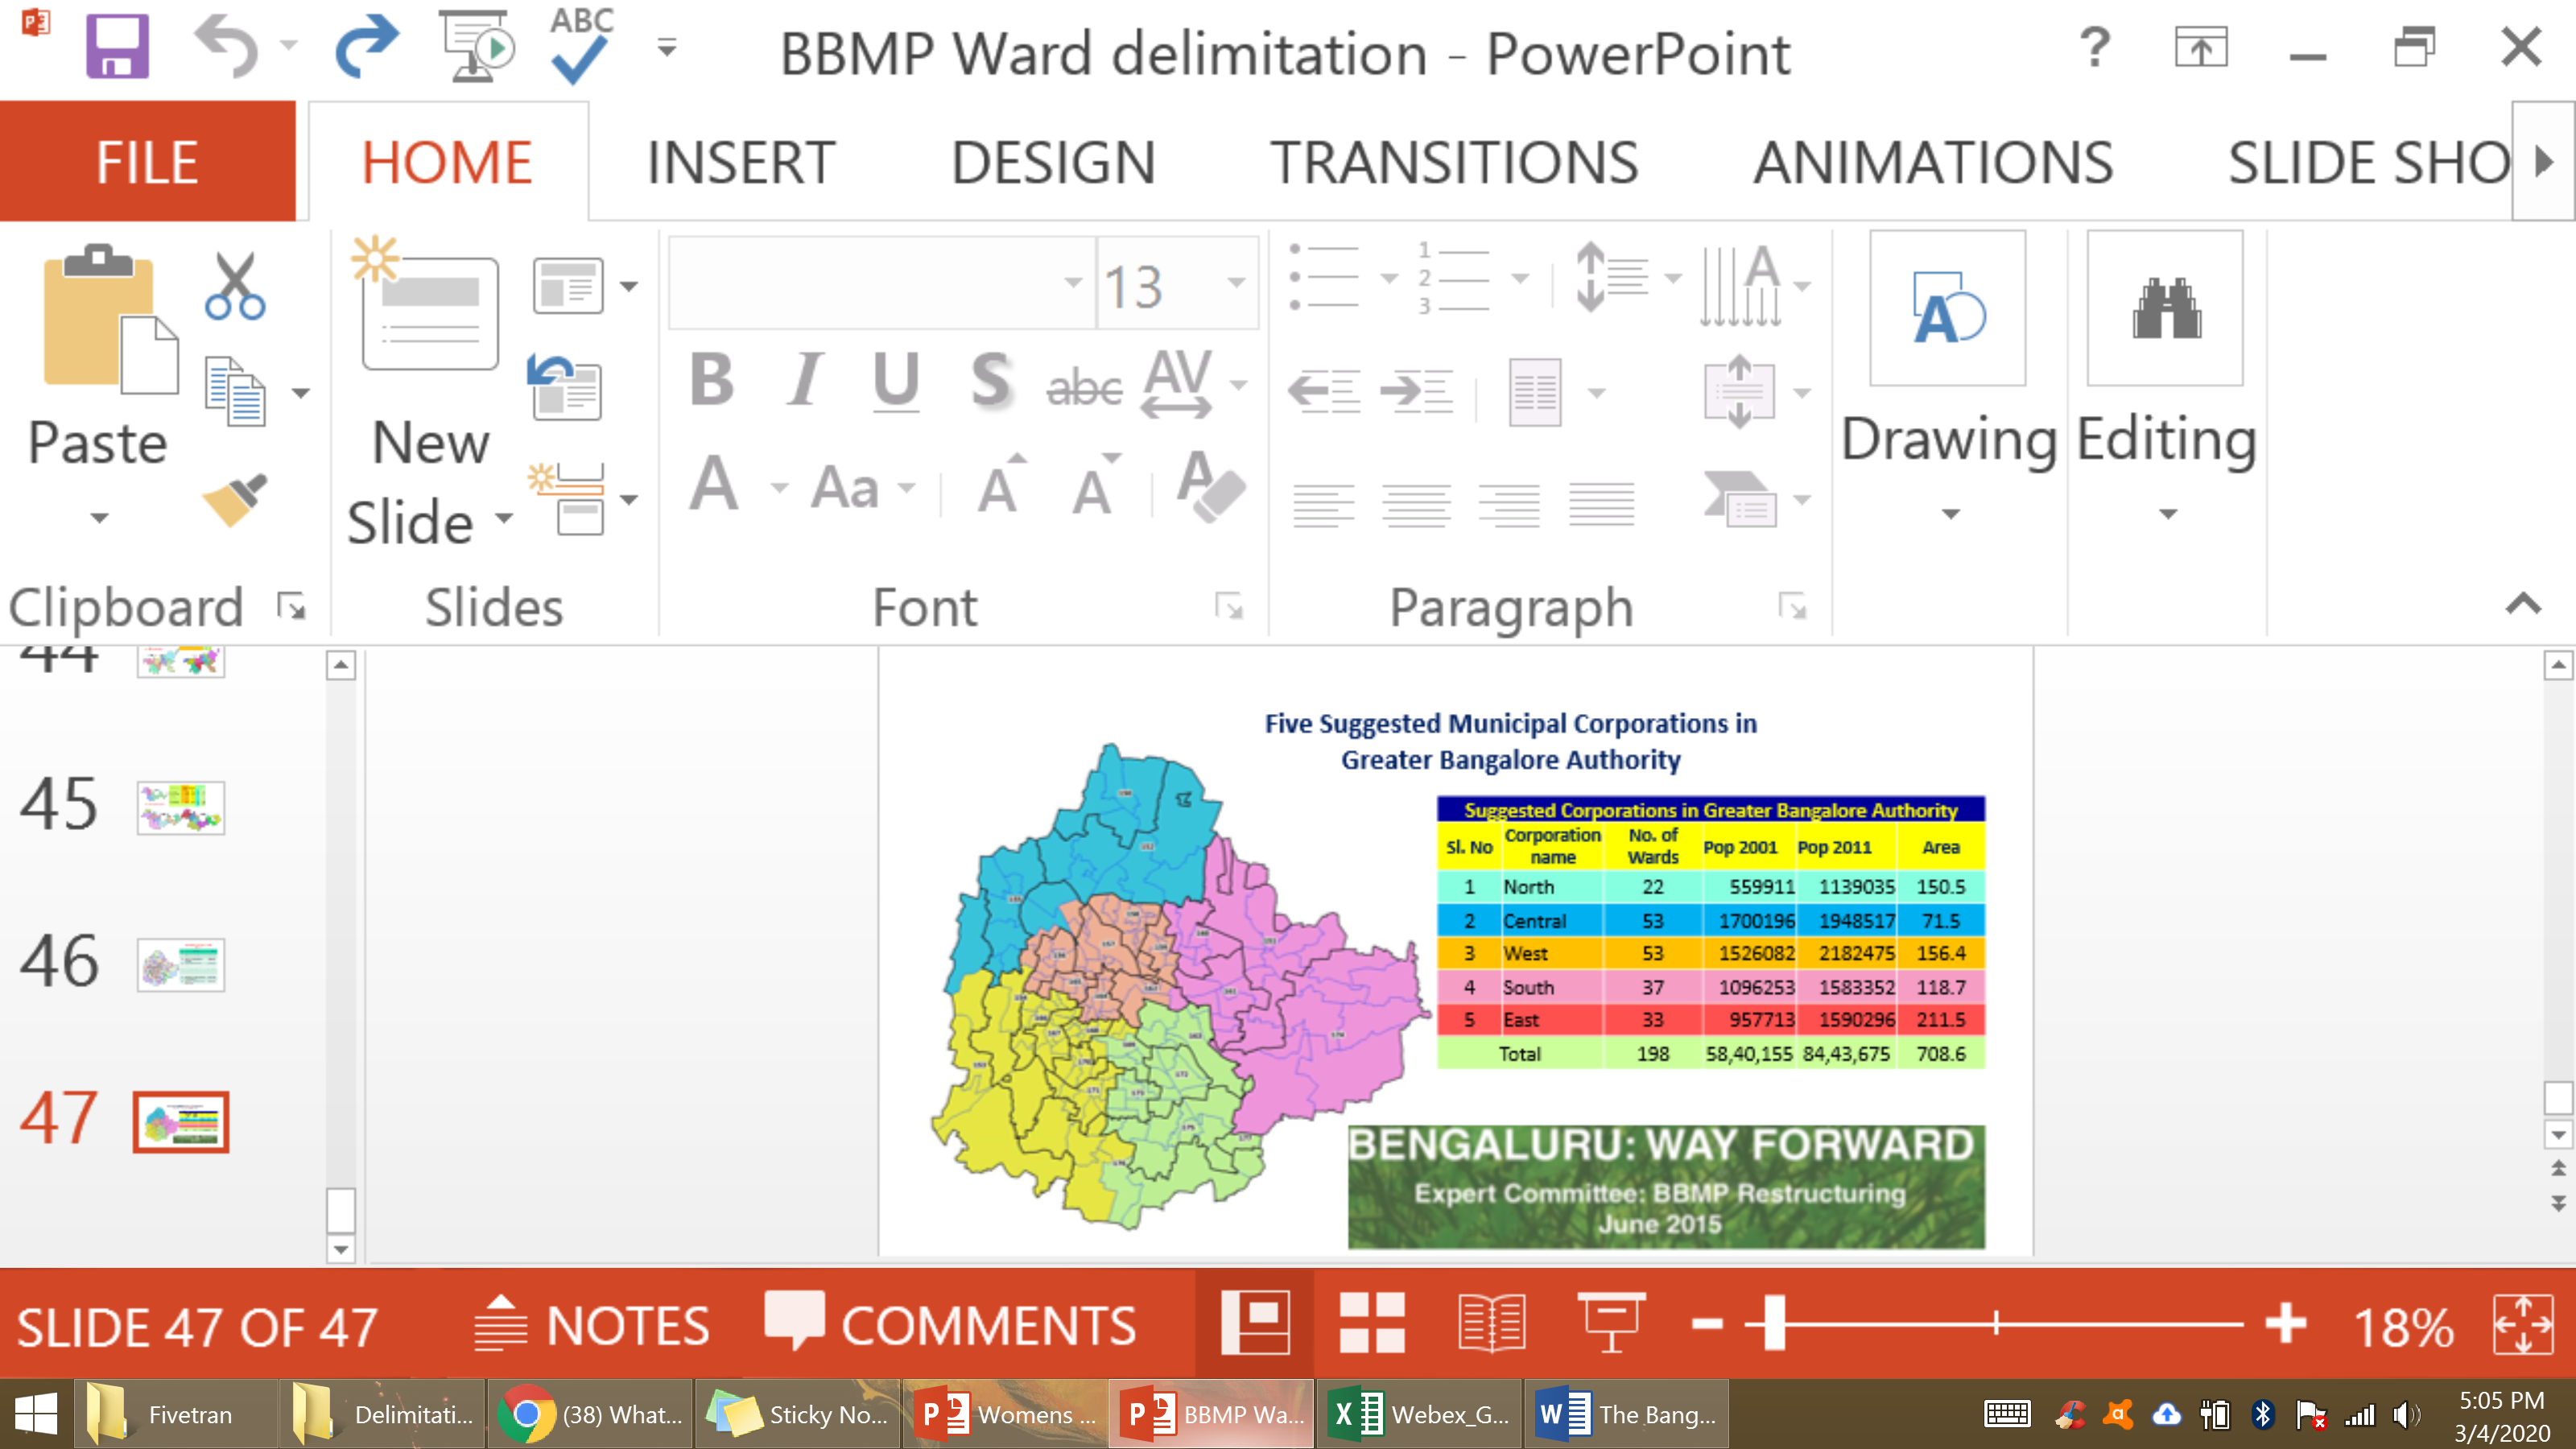 BBMP Ward Delimitation | Why should you care?